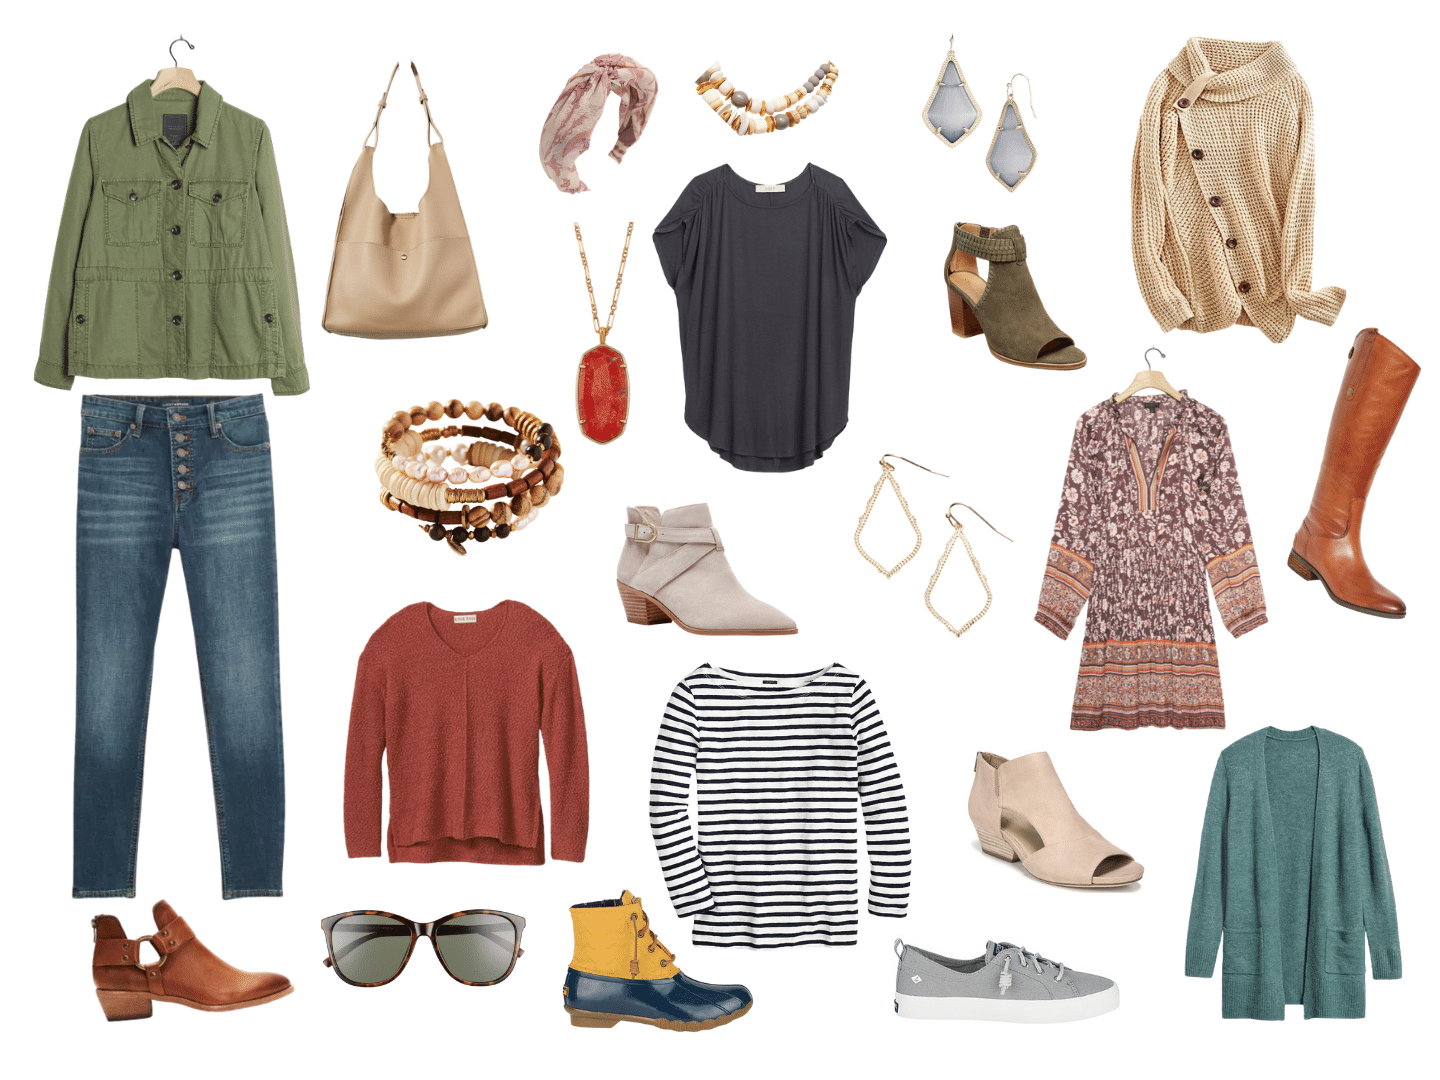 Casual Fall Fashion Finds: The Complete Round-Up